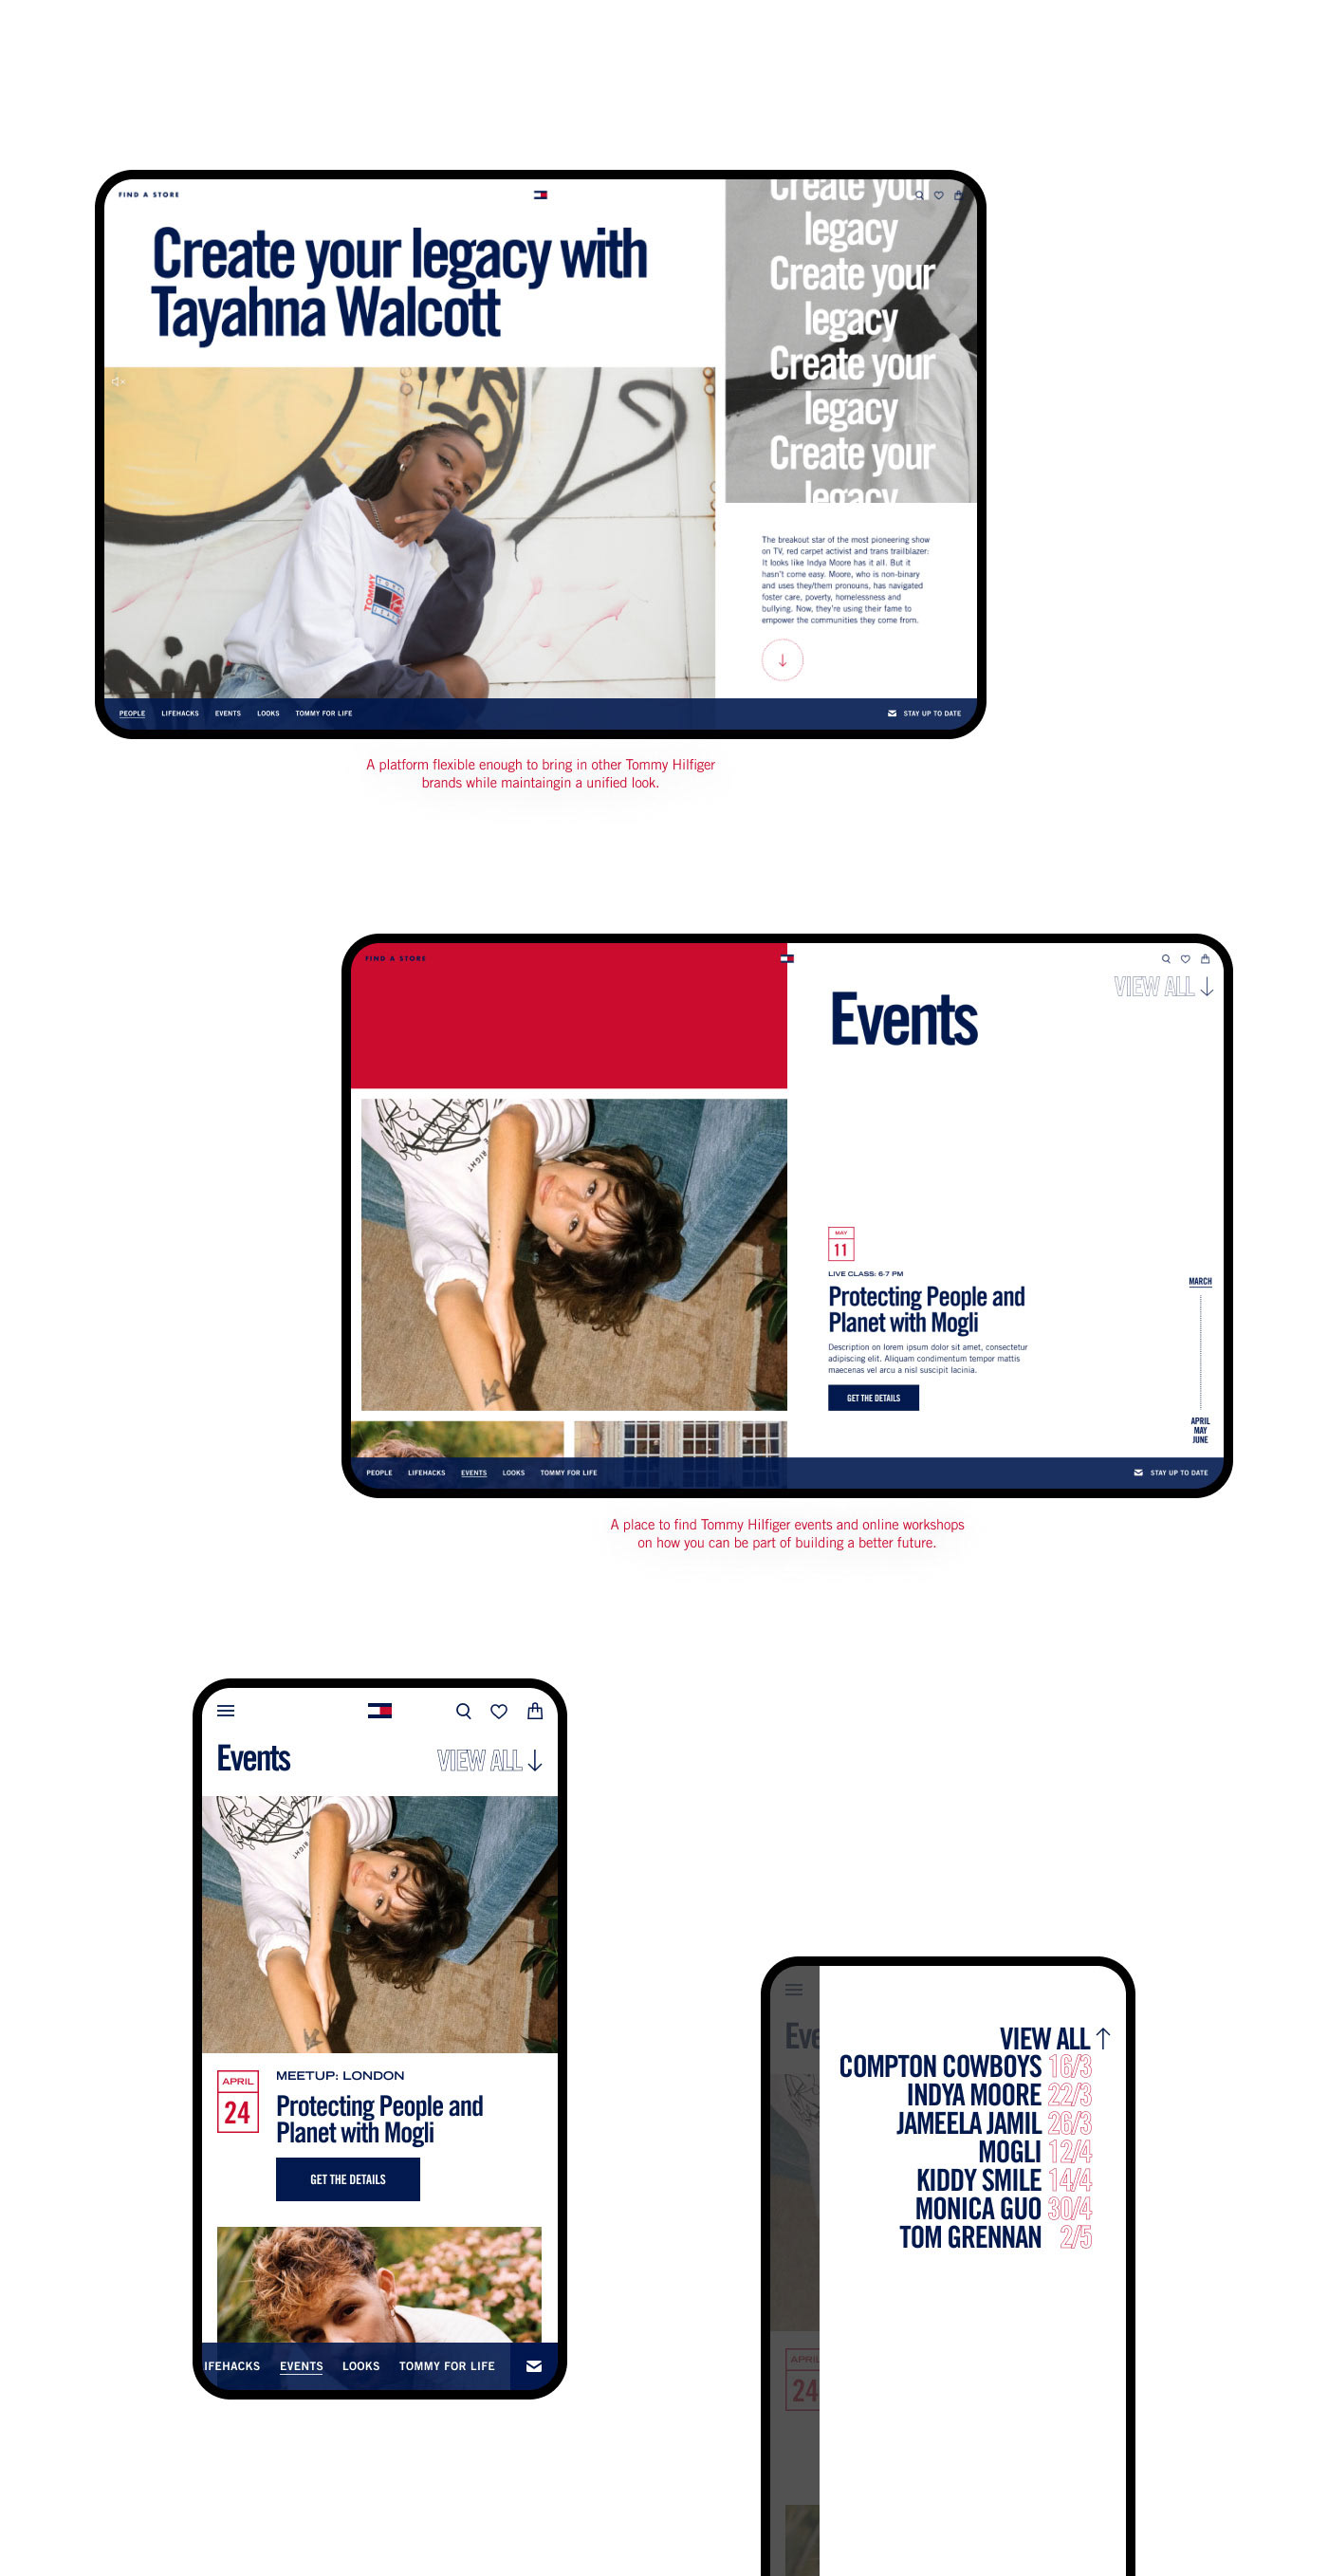 Design of the event pages using color blocks and designs from different campaigns with text overlays